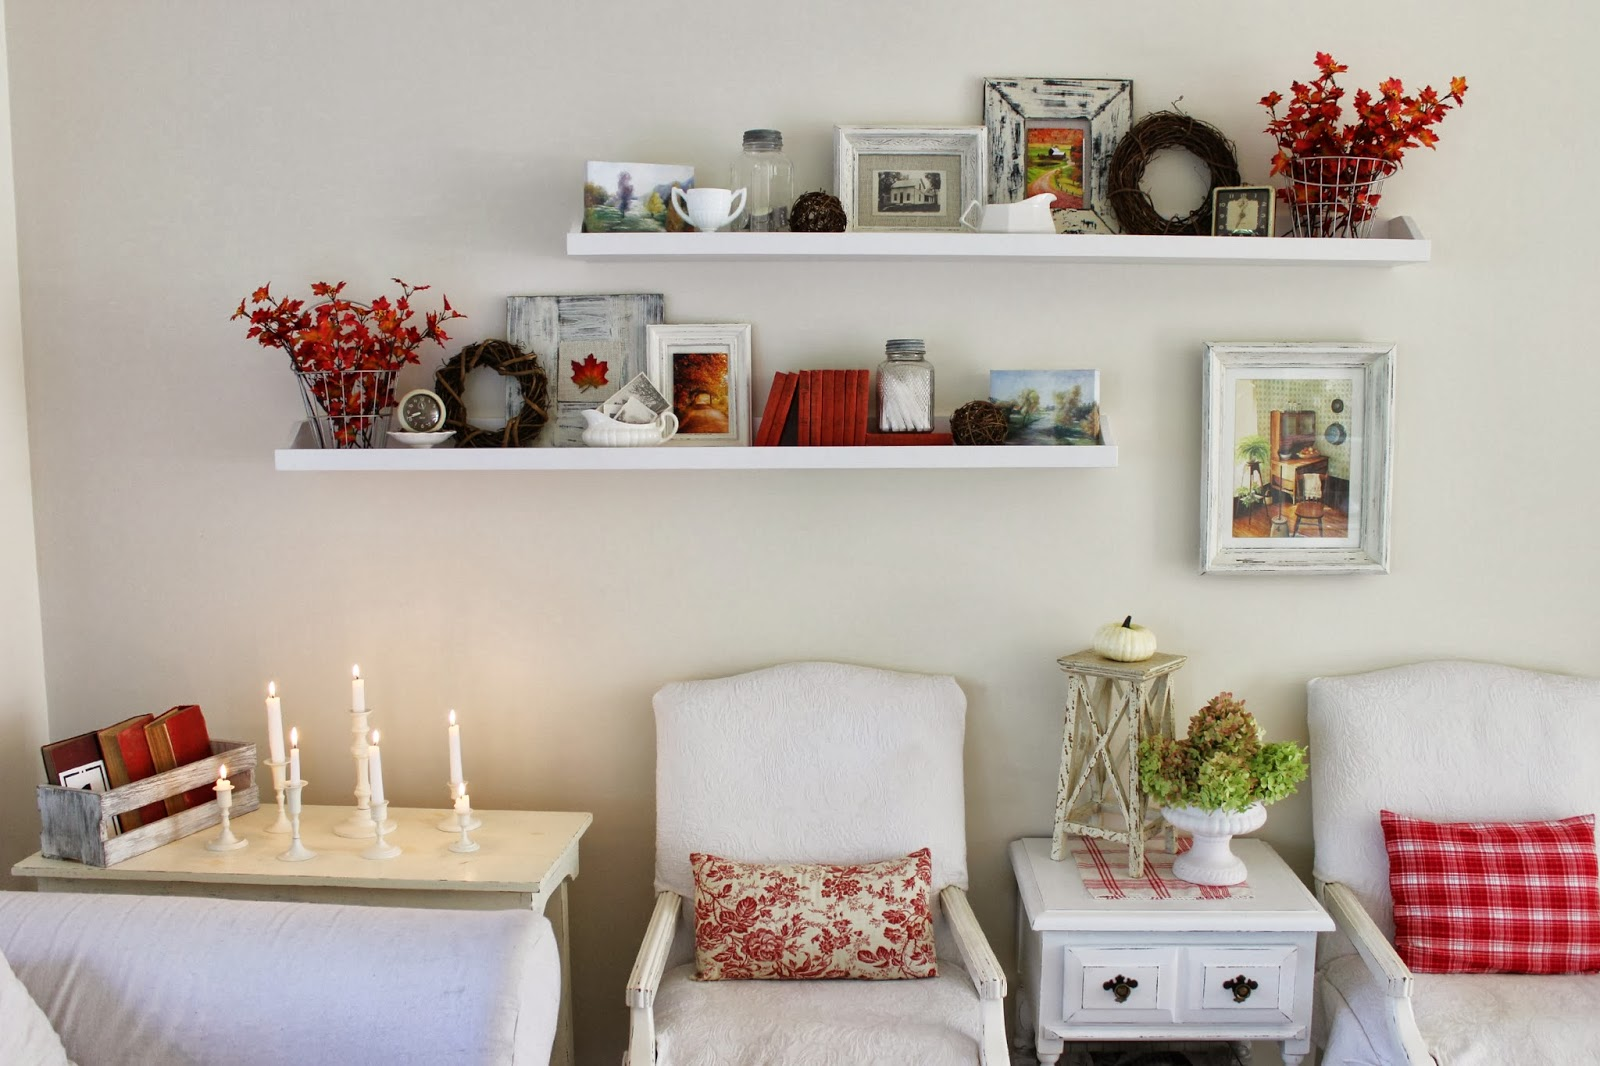 Tis Autumn Living Room Fall Decor Ideas: Happy At Home: Autumn Inspired Living Room